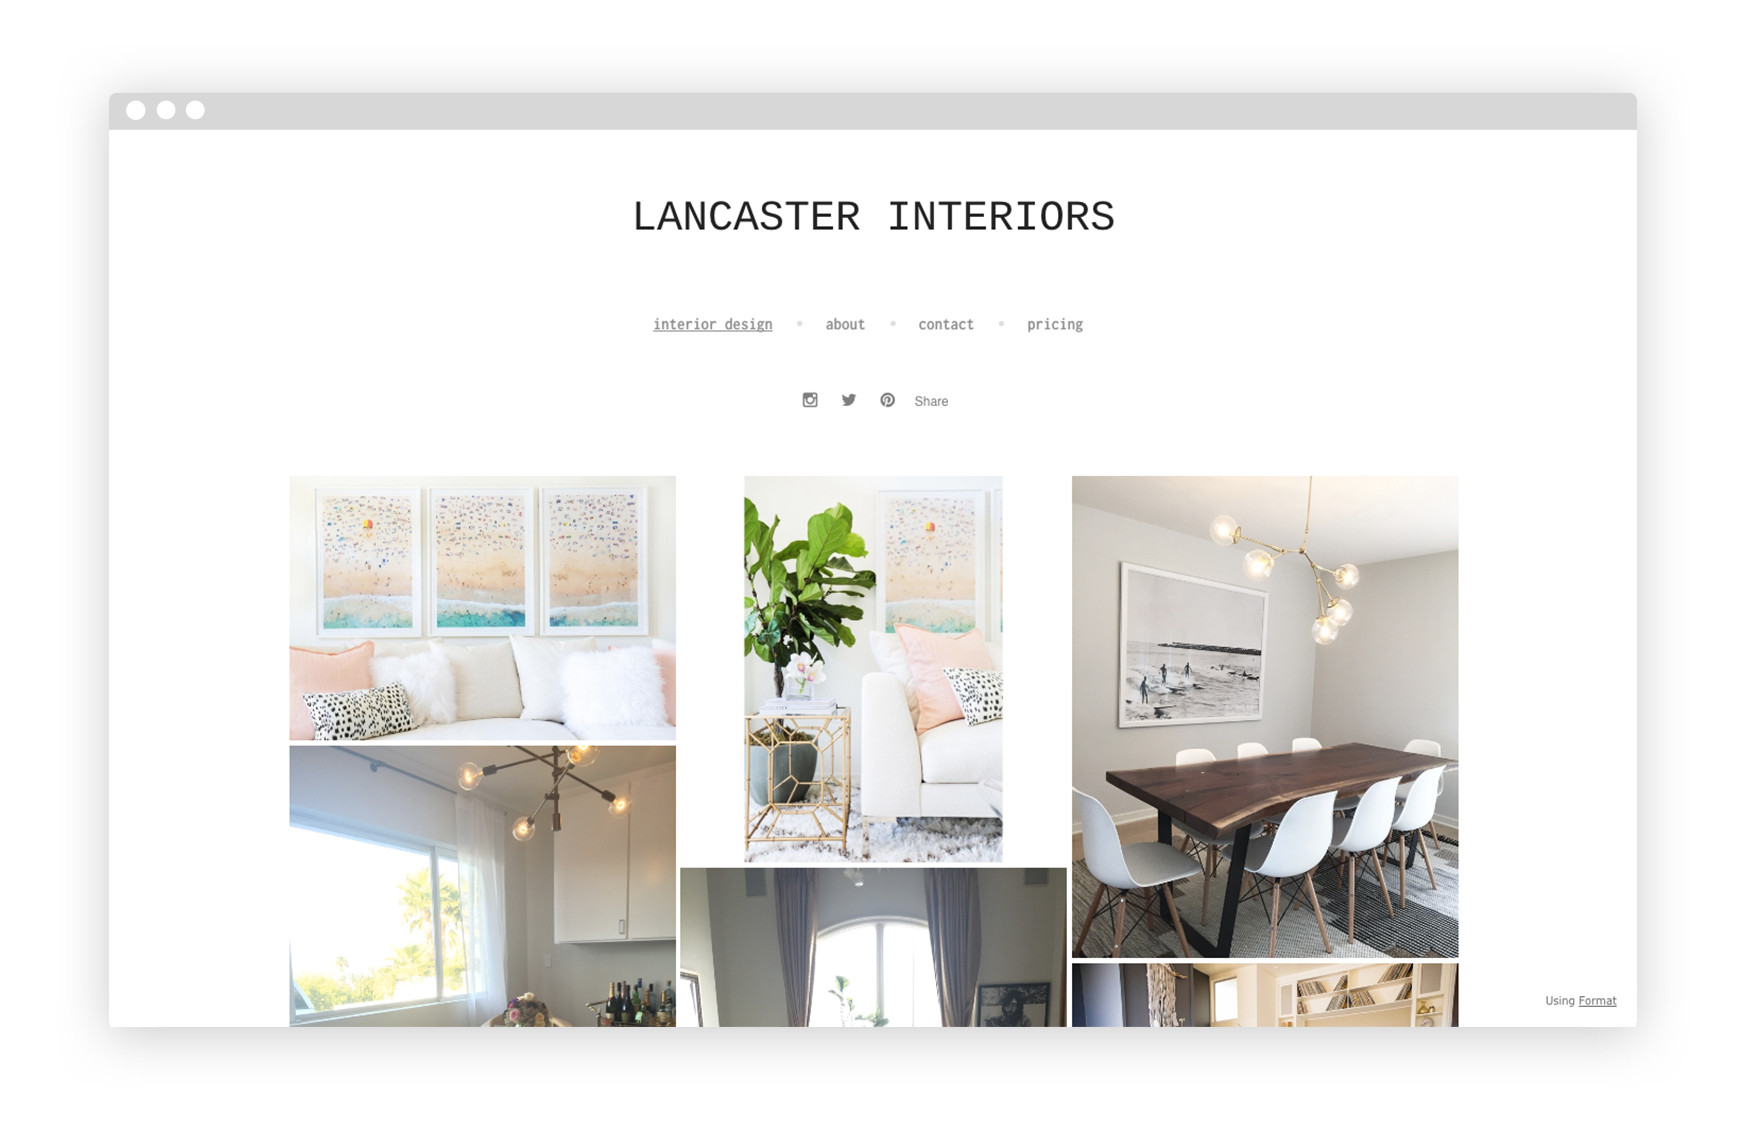 12 interior design portfolio website examples we love - Interior design portfolio samples ...